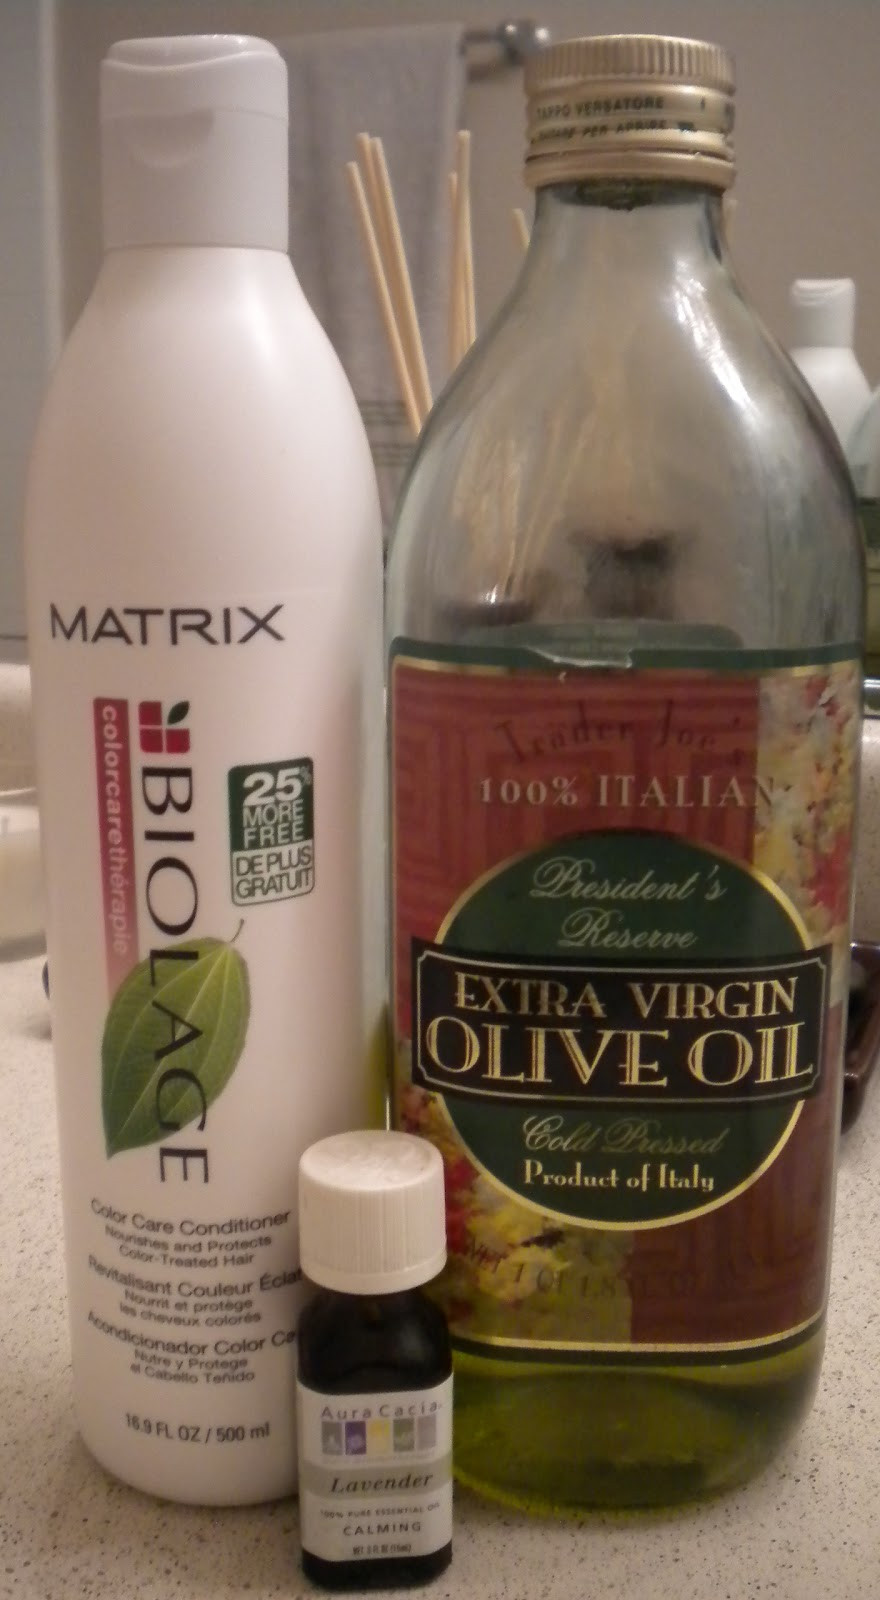 DIY Hot Oil Treatment For Damaged Hair  GorJess Fashion For Less Winter Dry Hair Remedy